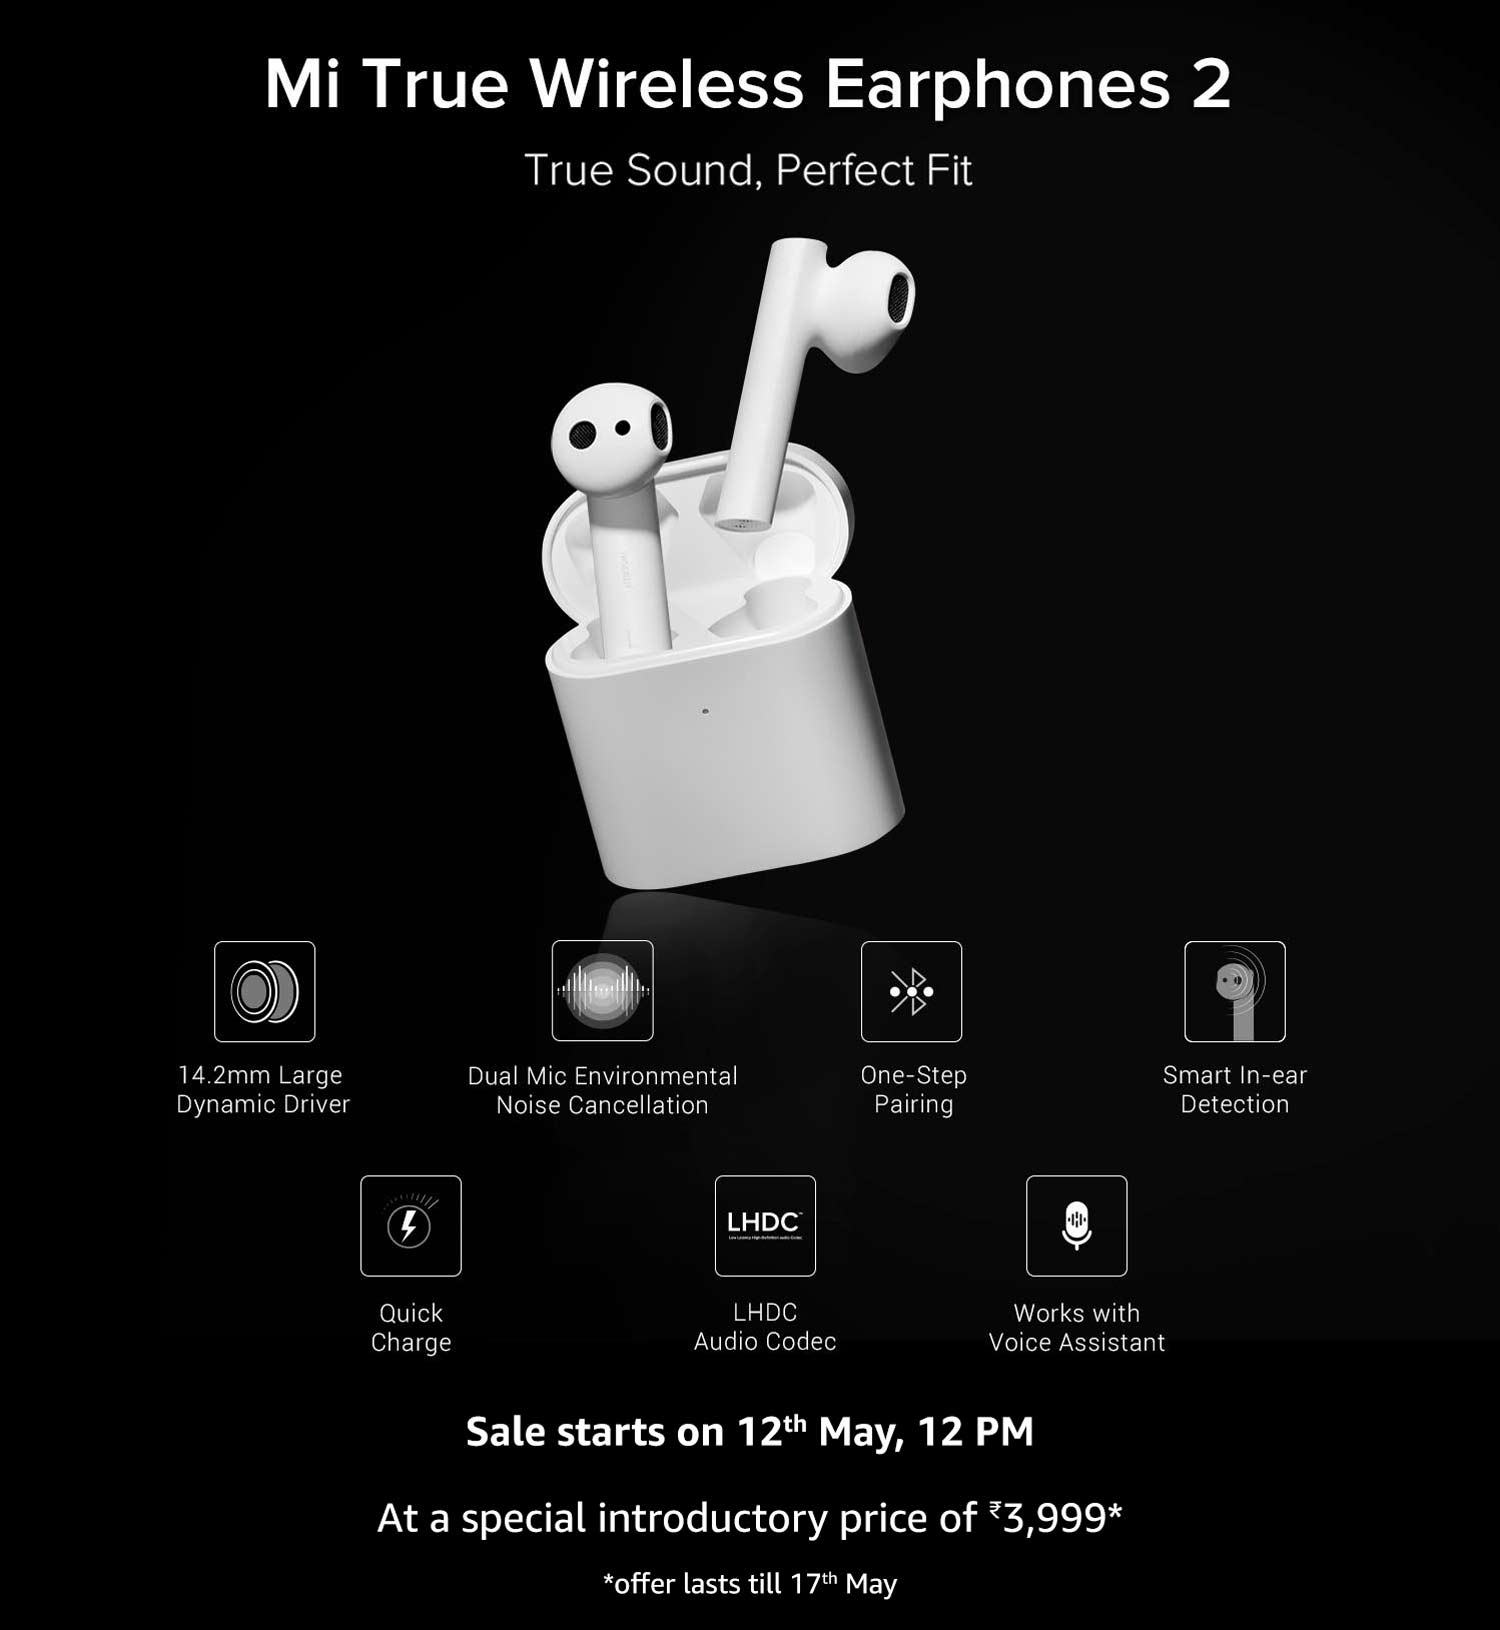 Mi True Wireless Earphones 2 Sale on May 12th on Amazon India